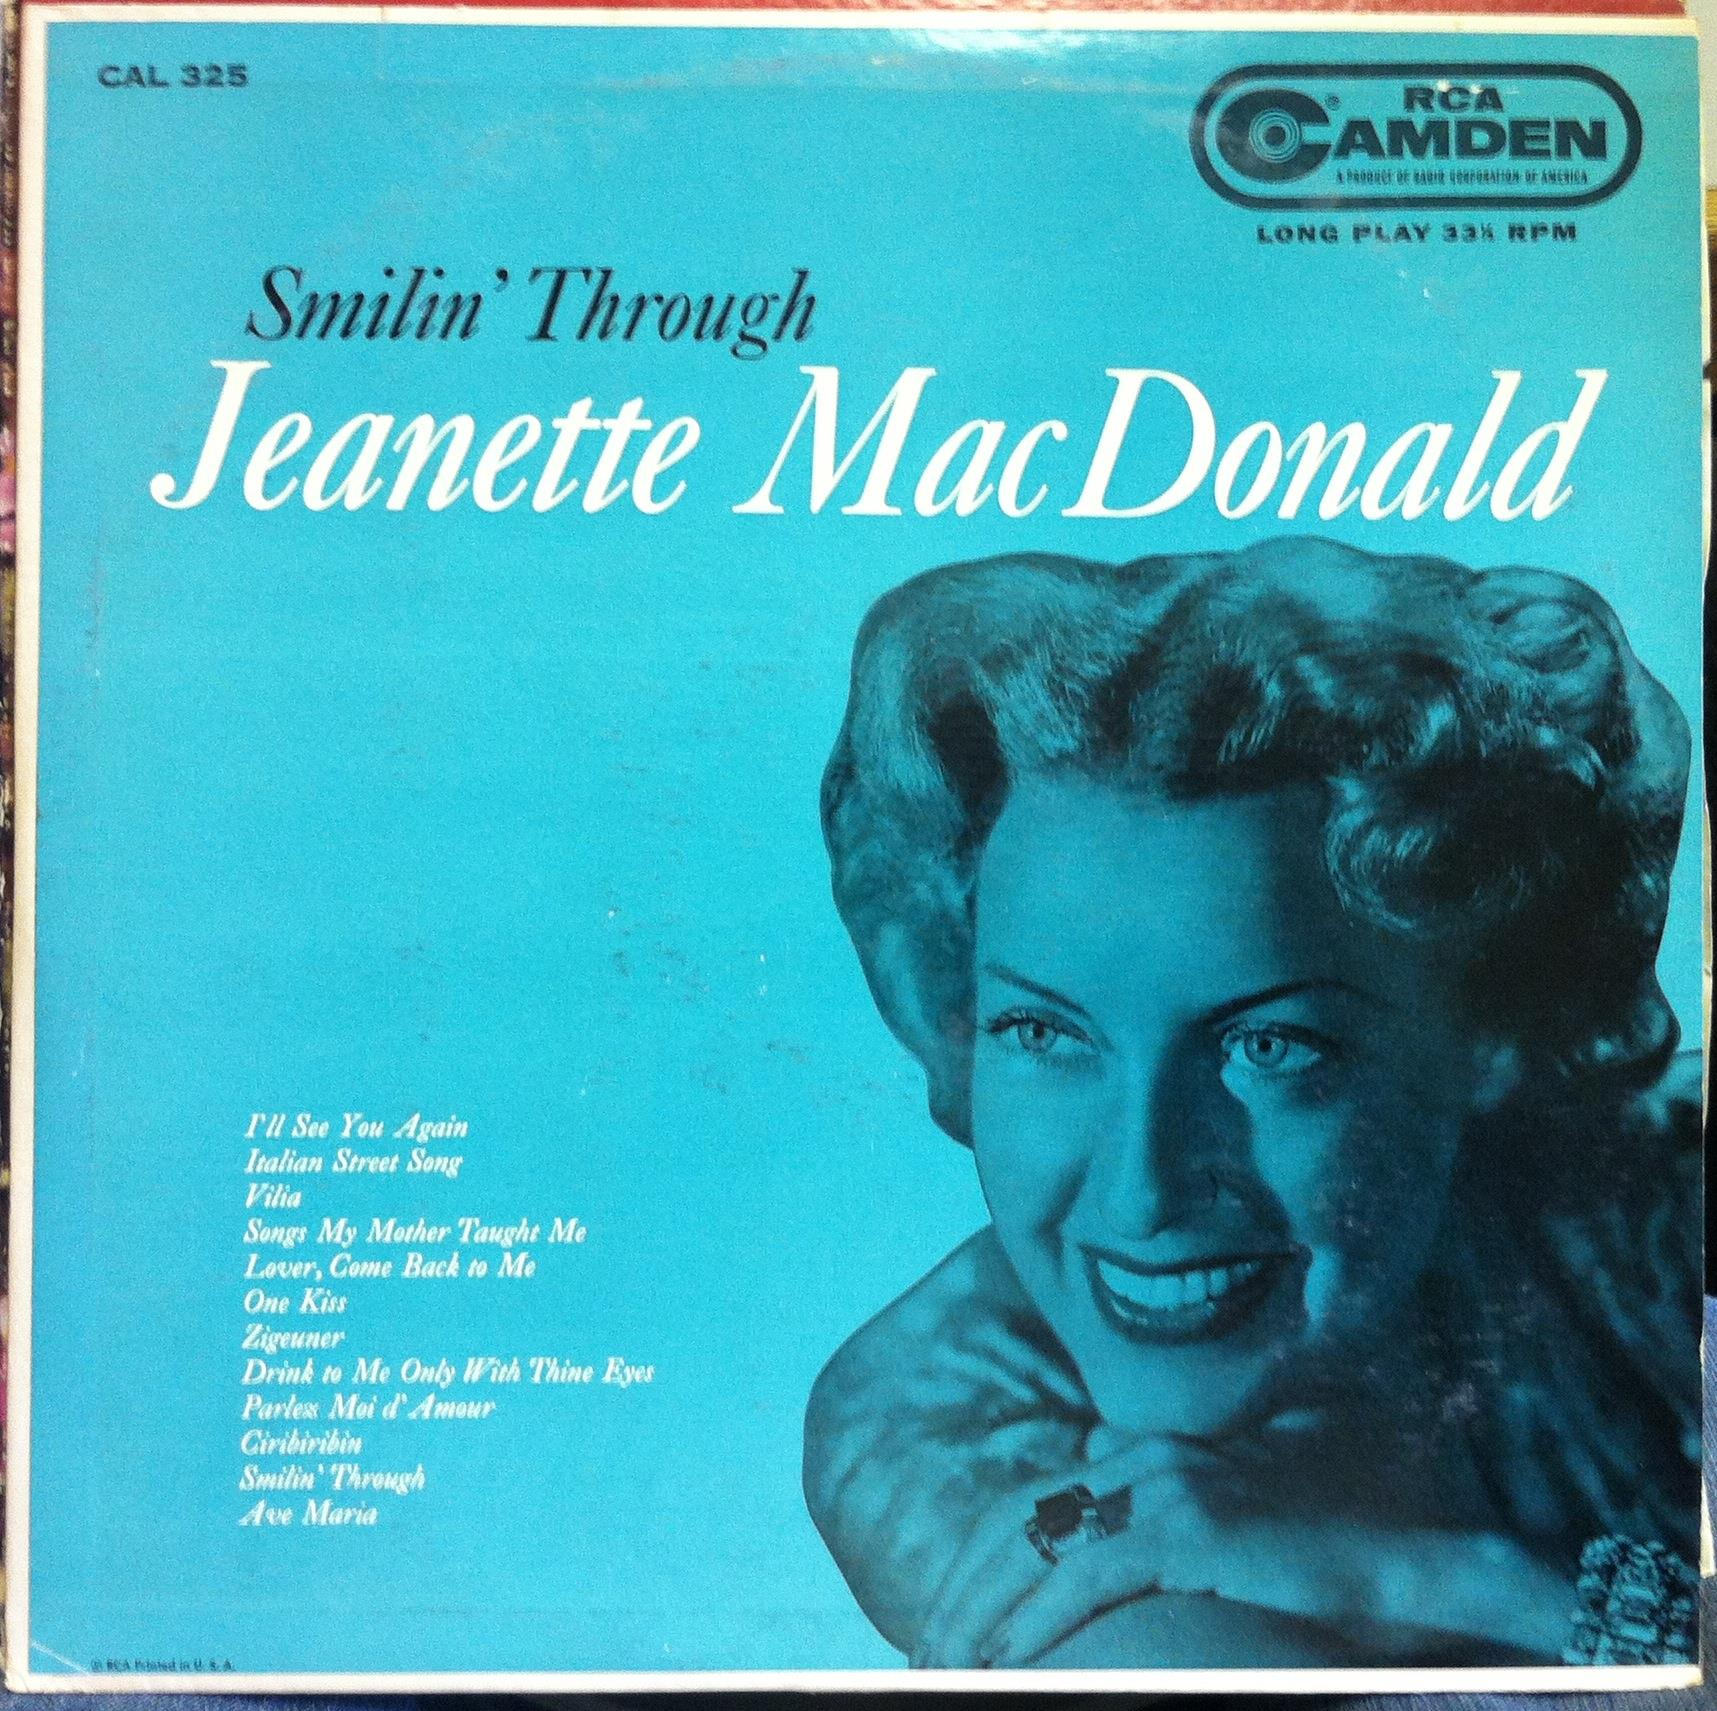 JEANETTE MACDONALD - Jeanette Macdonald Smilin Through Lp Mint- Cal-325 1st Press Cover Mono Record (smilin Through)